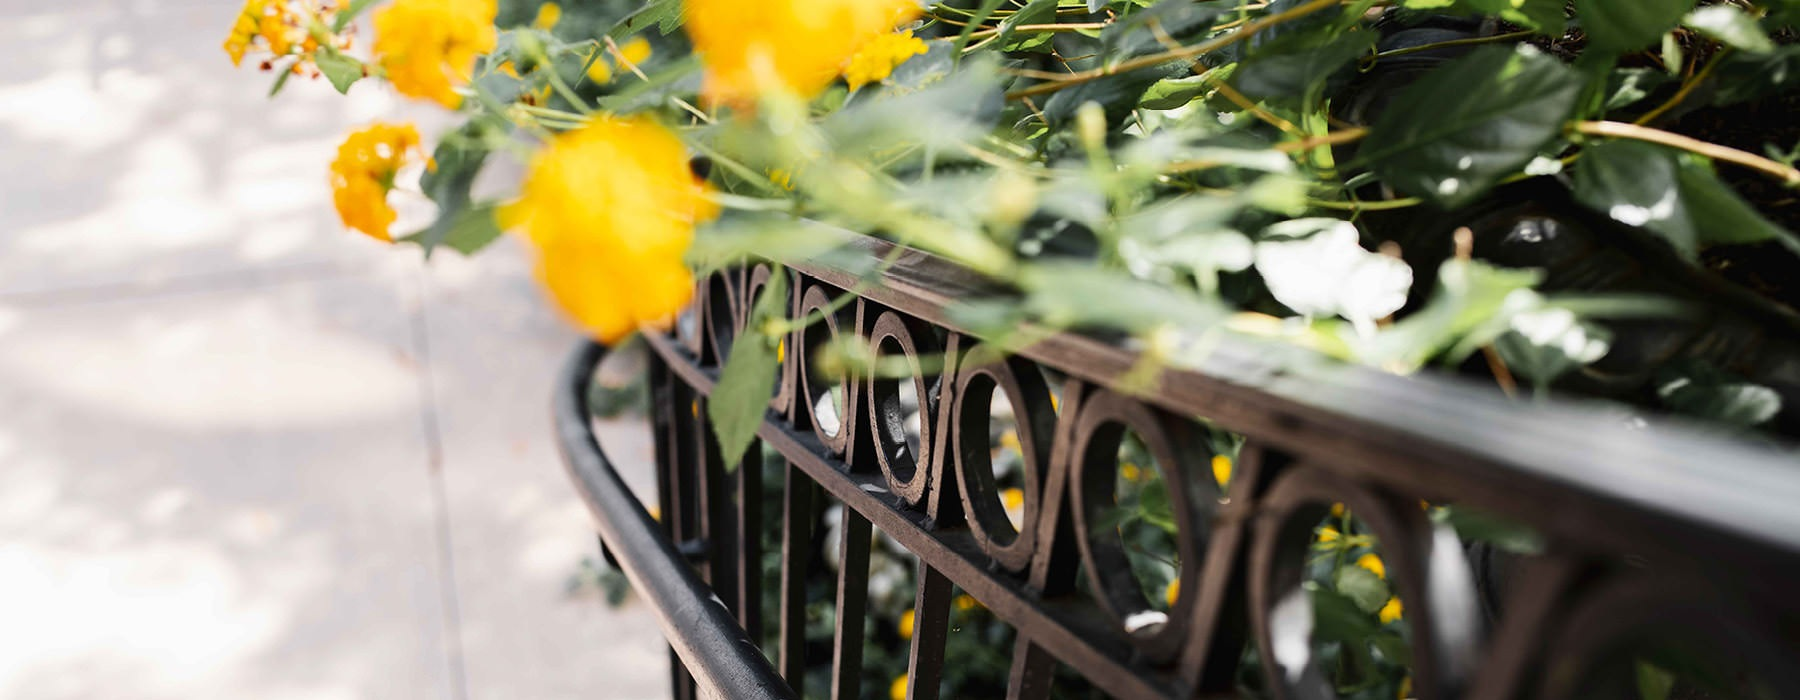 outdoor staircase railing with orange flowers growing alongside and over it